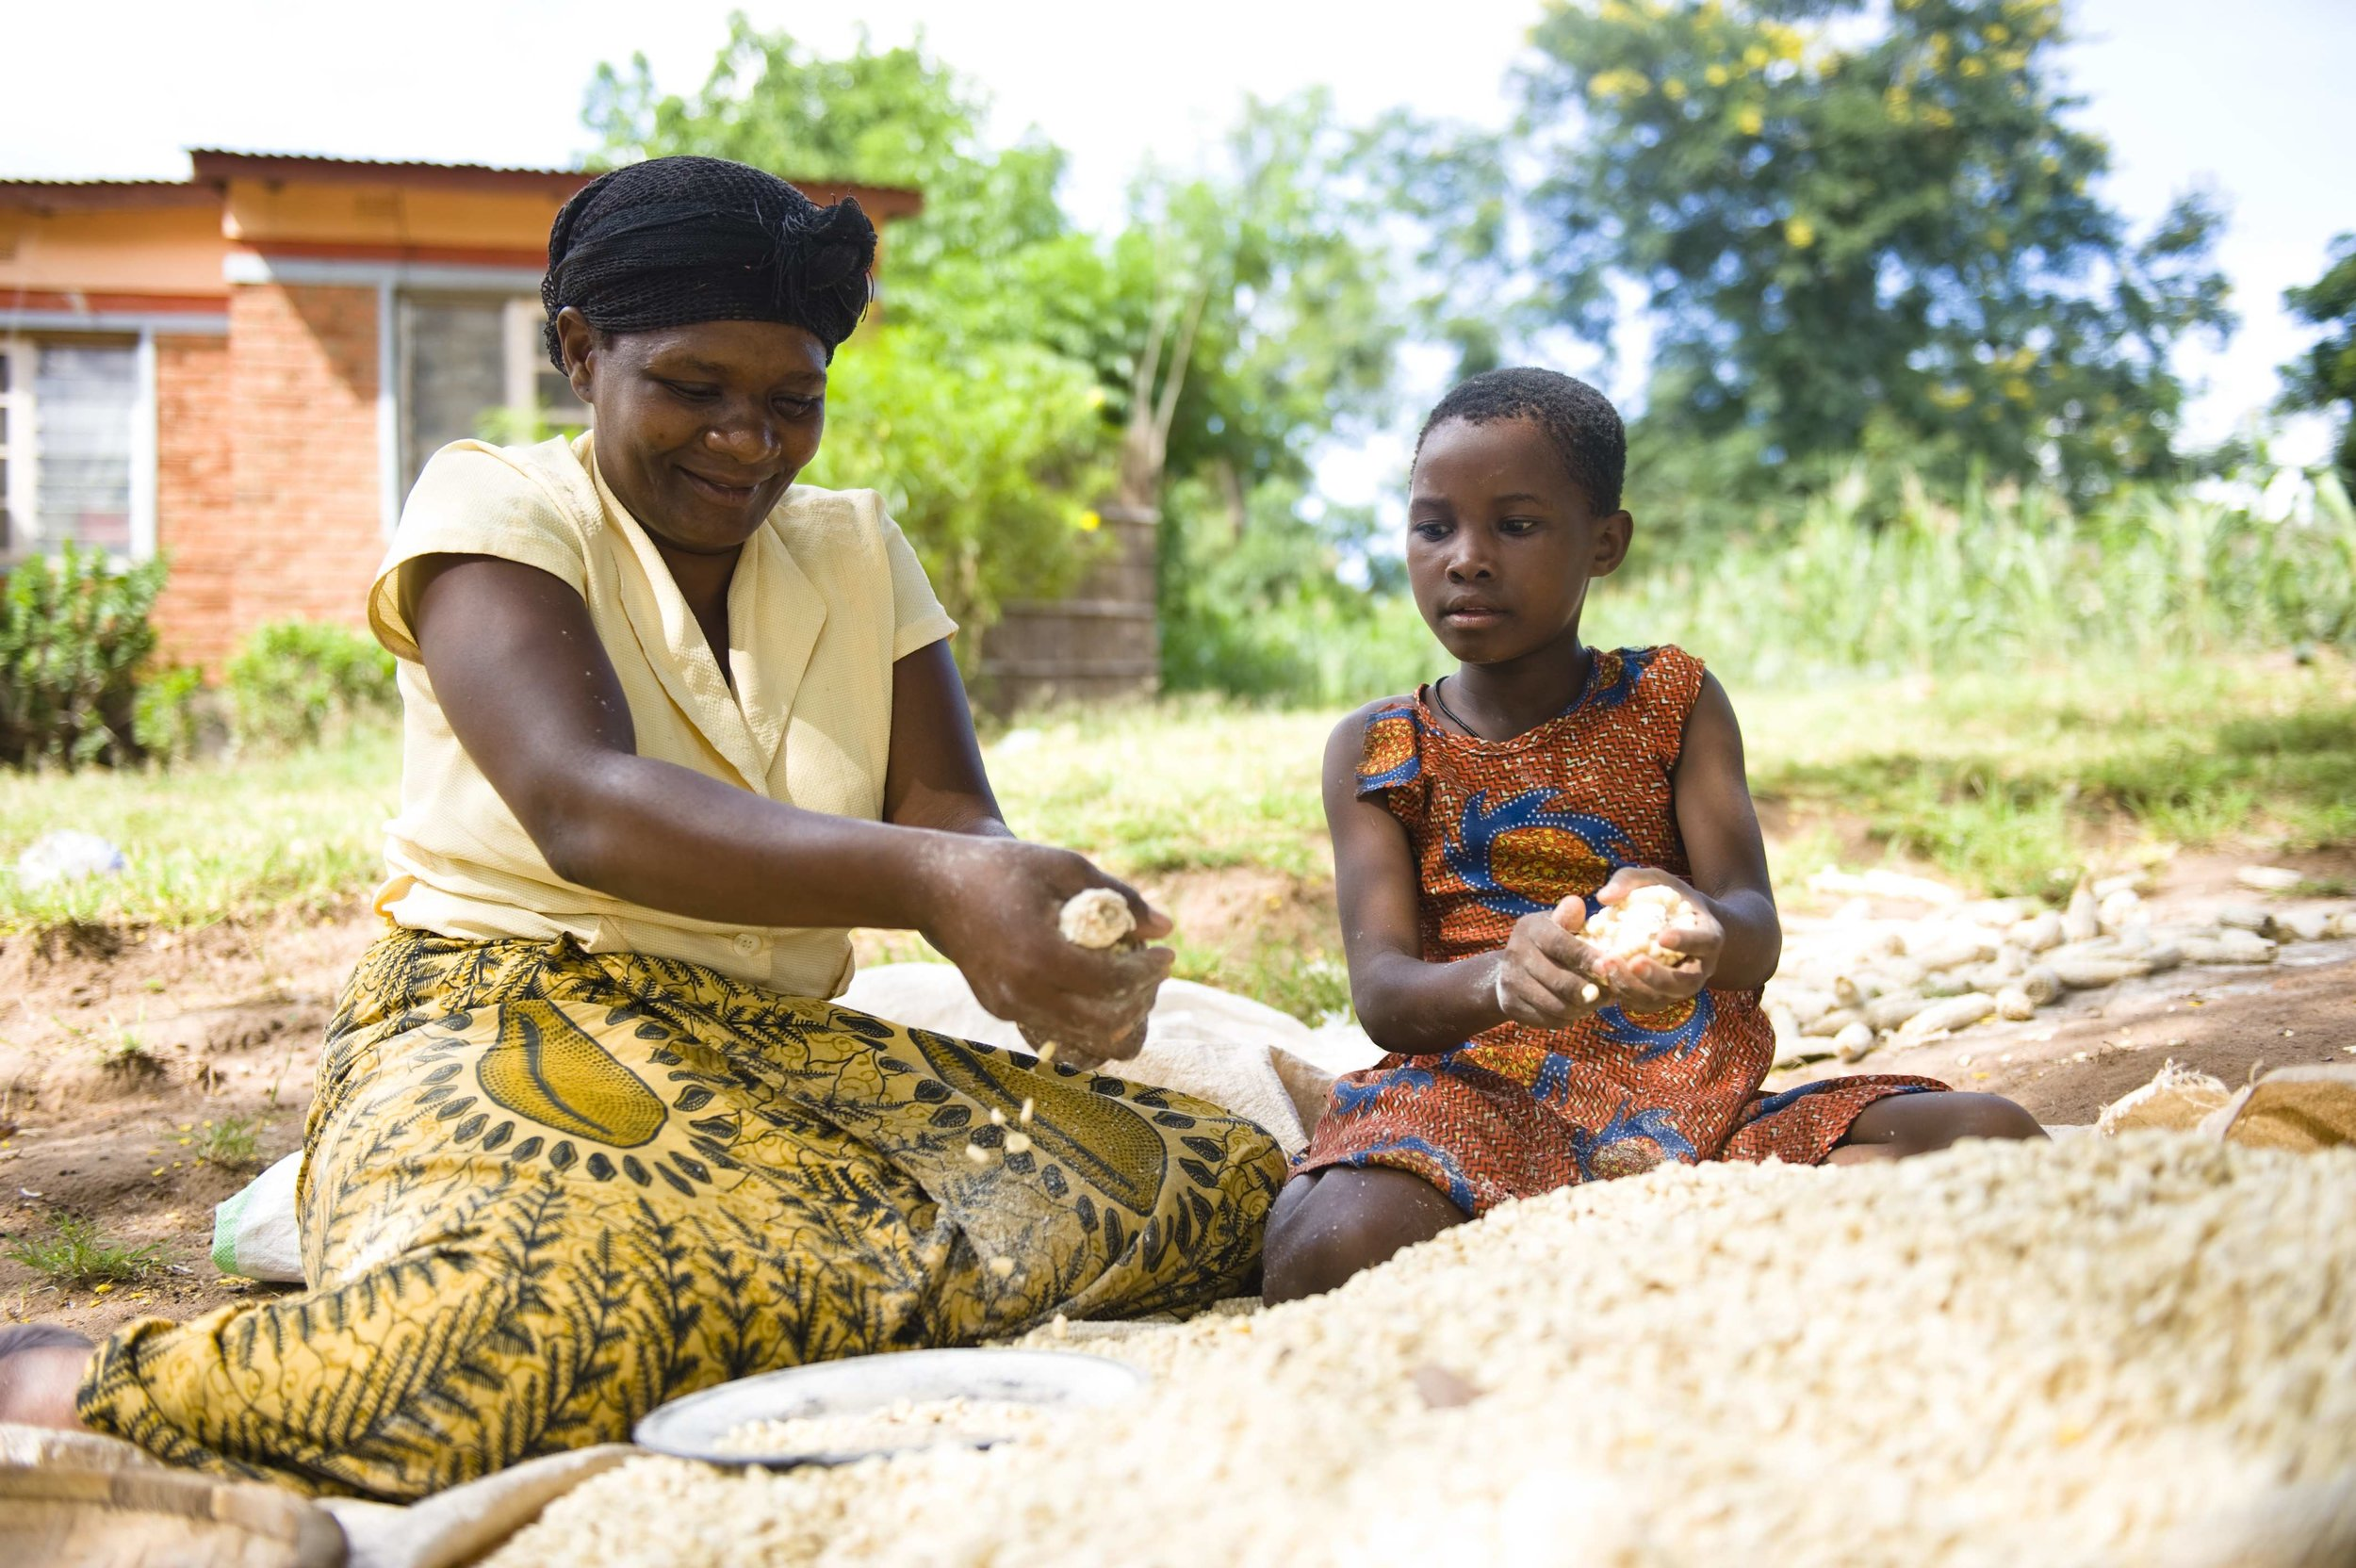 an older African woman and a small girl sit outside preparing maize